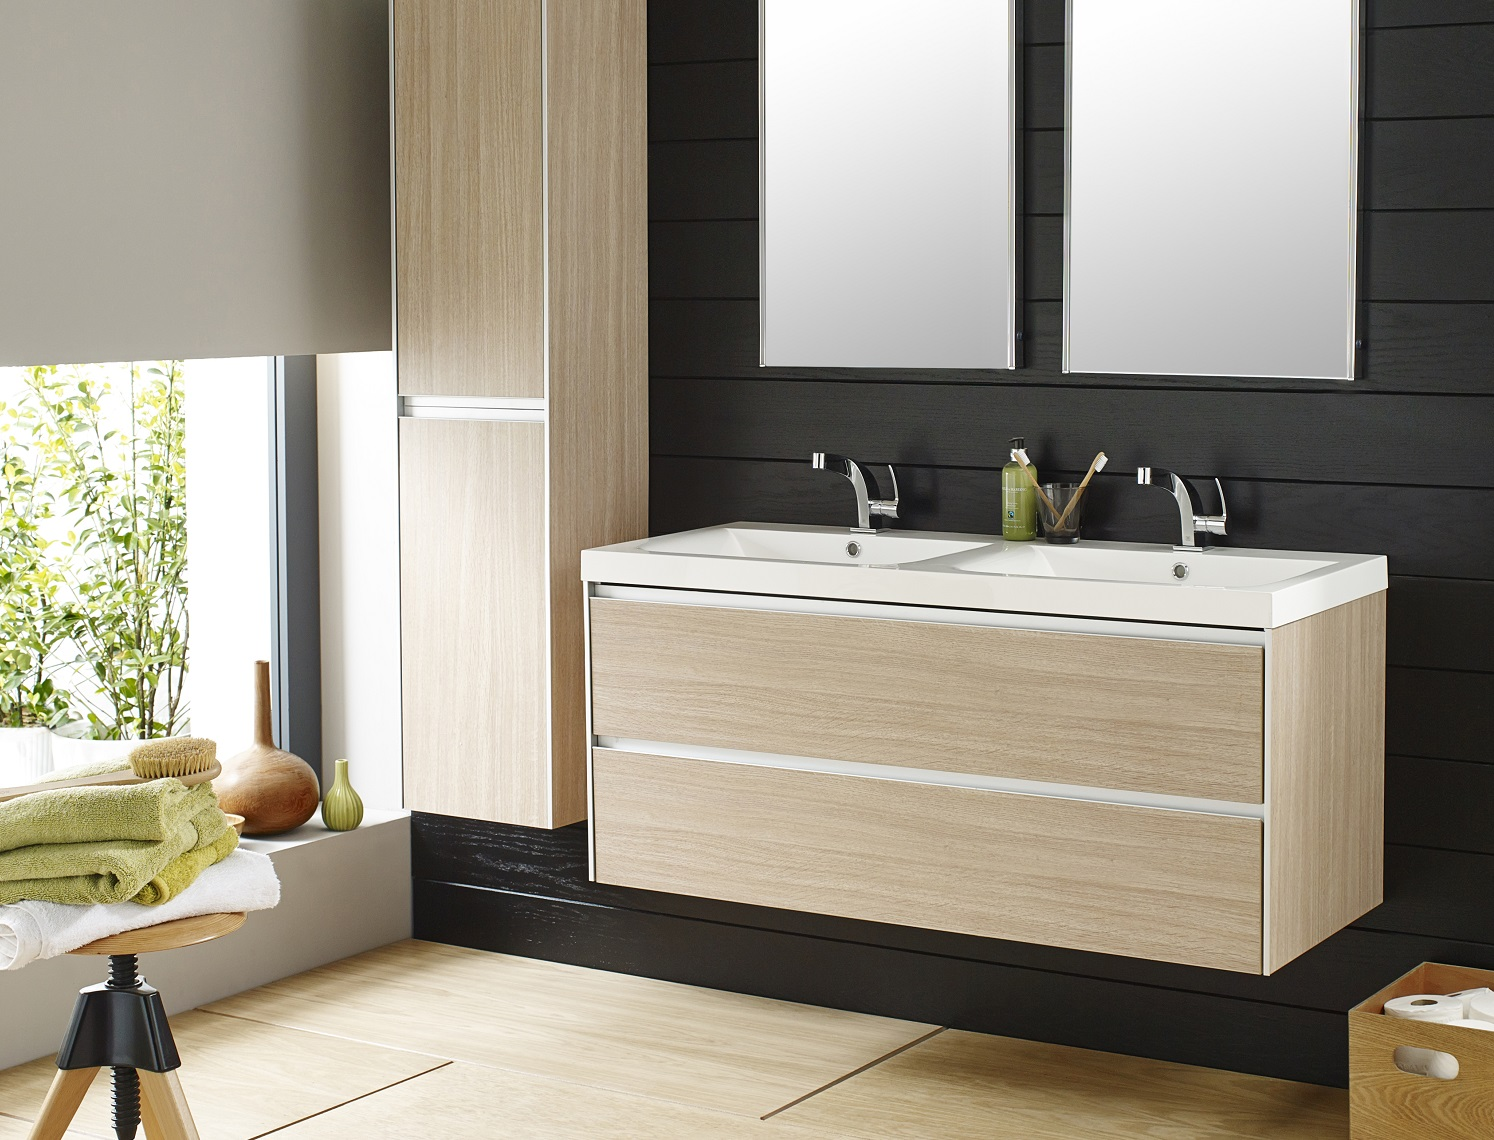 Best bathroom furniture uk - Bathroom Units Are Available In So Many Designs And Sizes To Suit Any Requirement Which Is Great But This Can Also Make It Difficult To Choose The Best